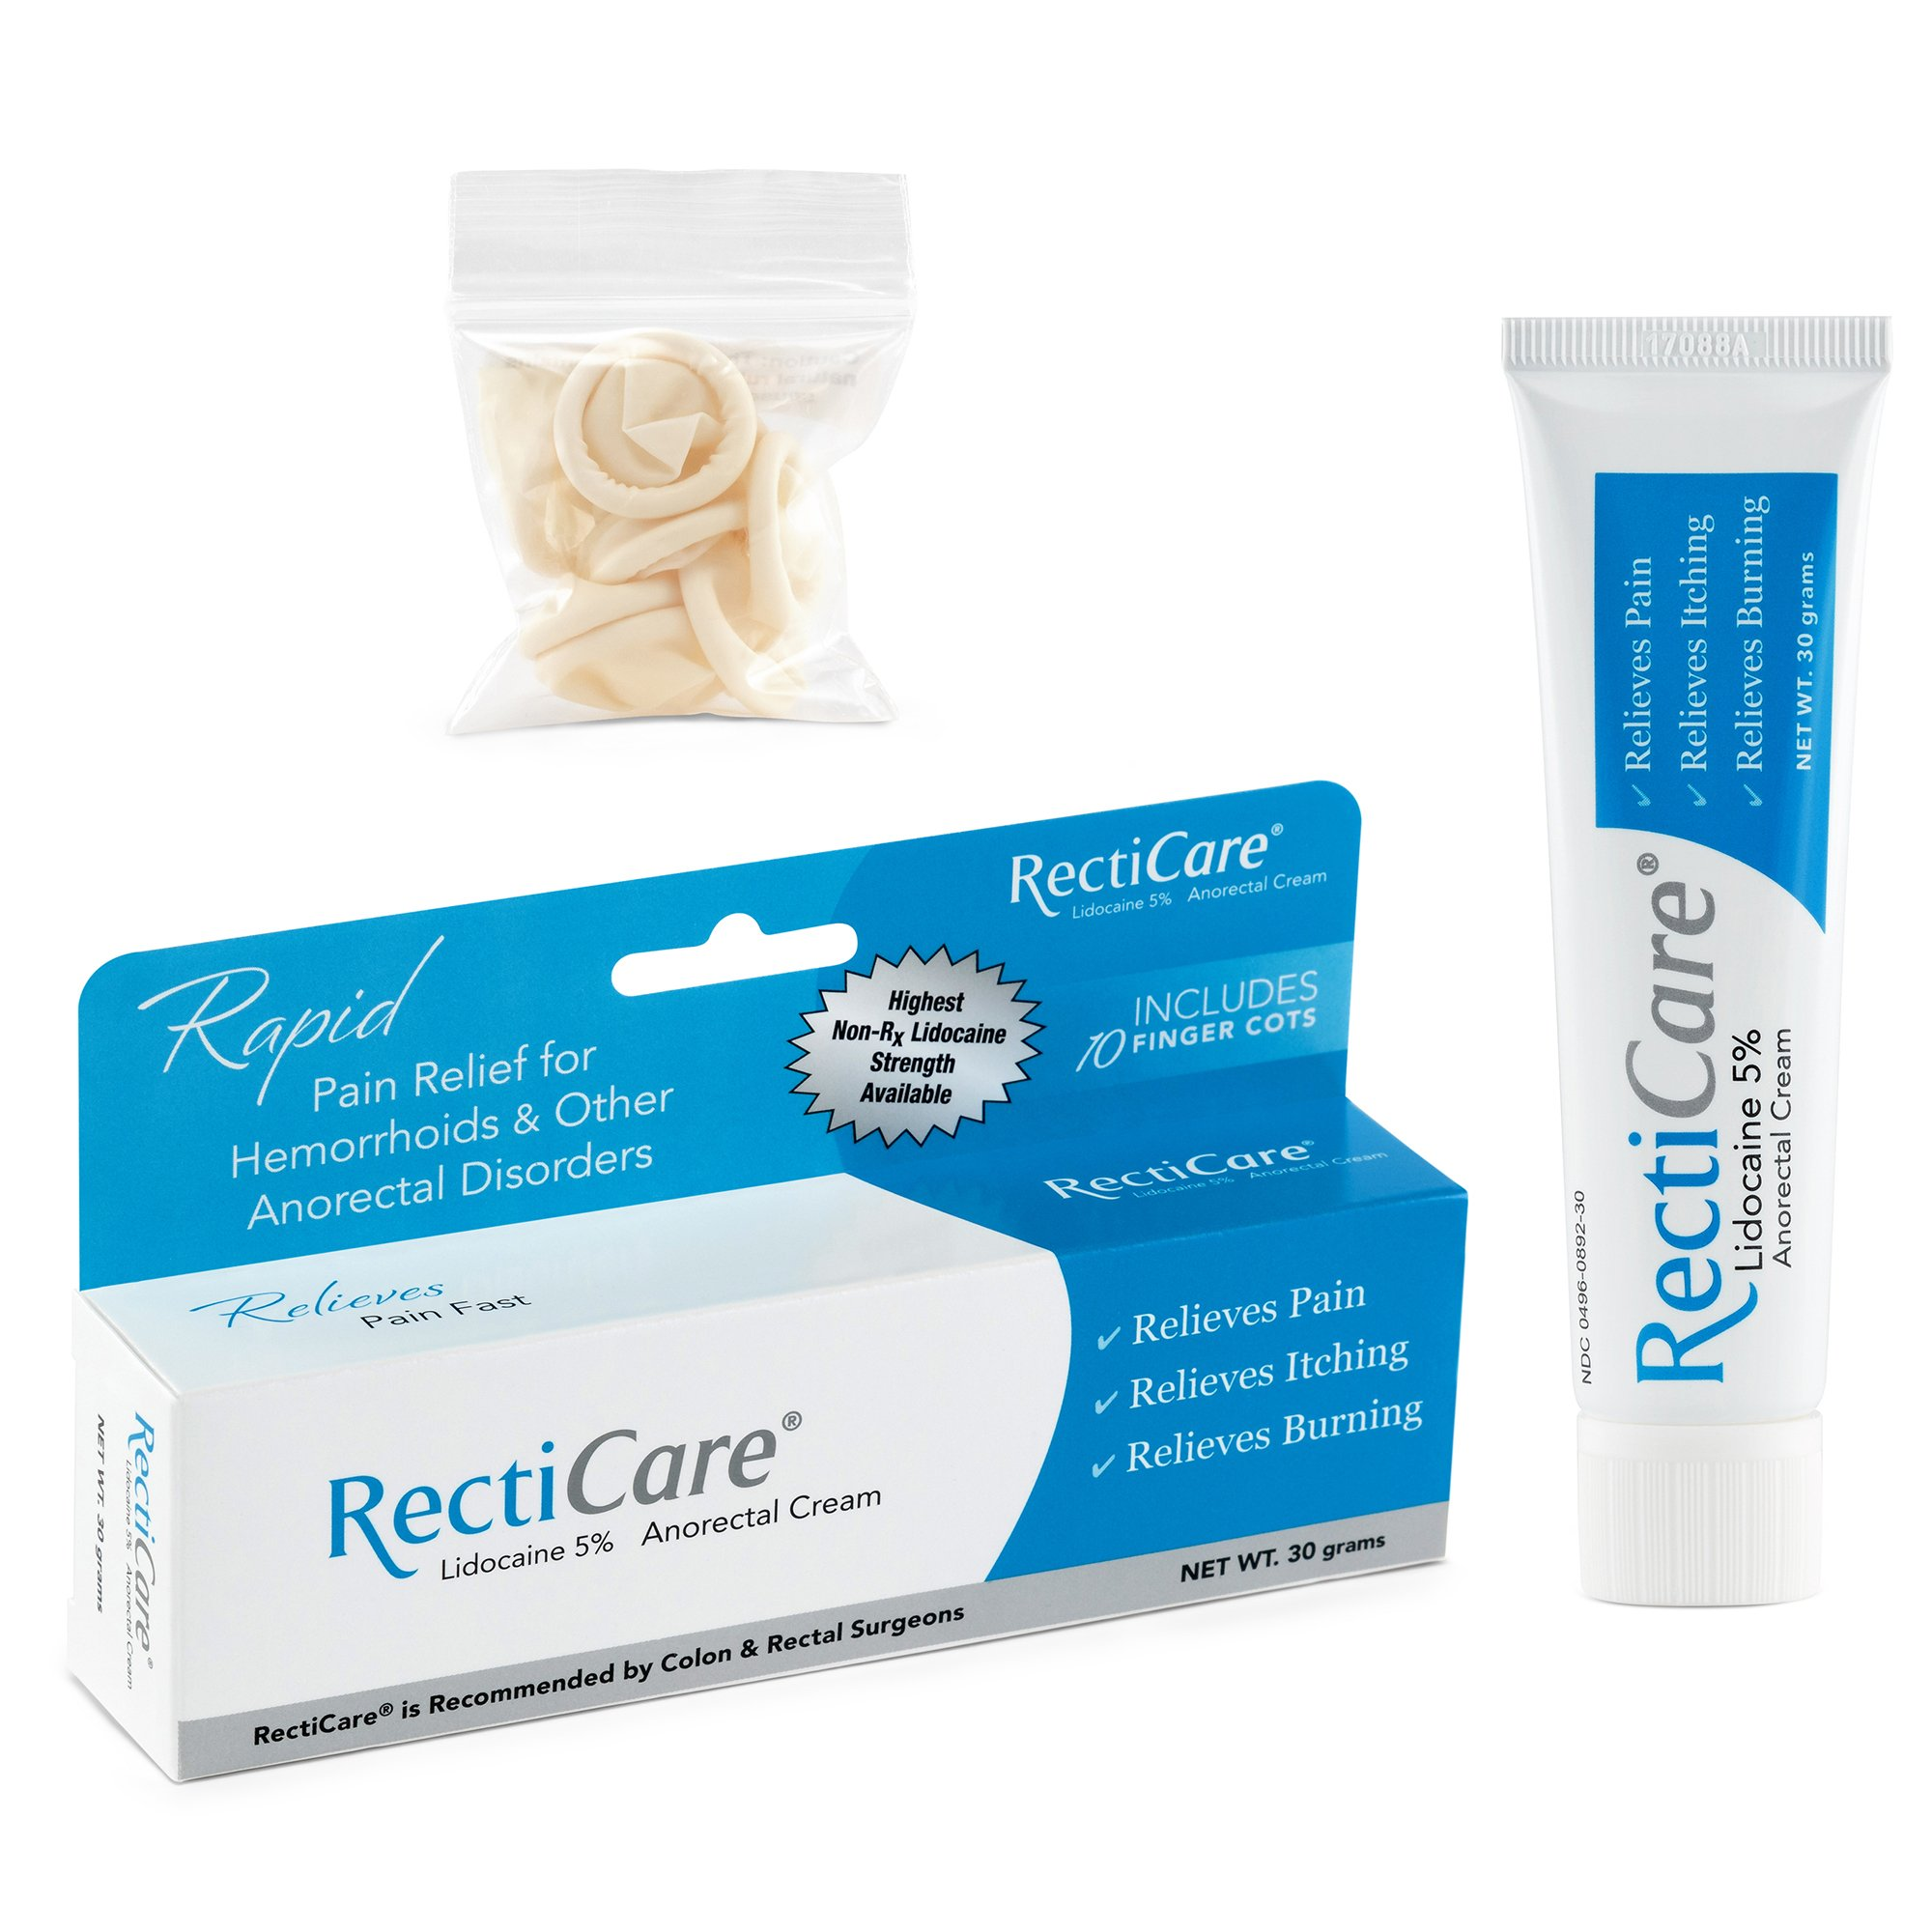 RectiCare Anorectal Lidocaine 5% Cream: Topical Numbing Cream for Treatment of Hemorrhoids & Other Anorectal Disorders - 30g Tube